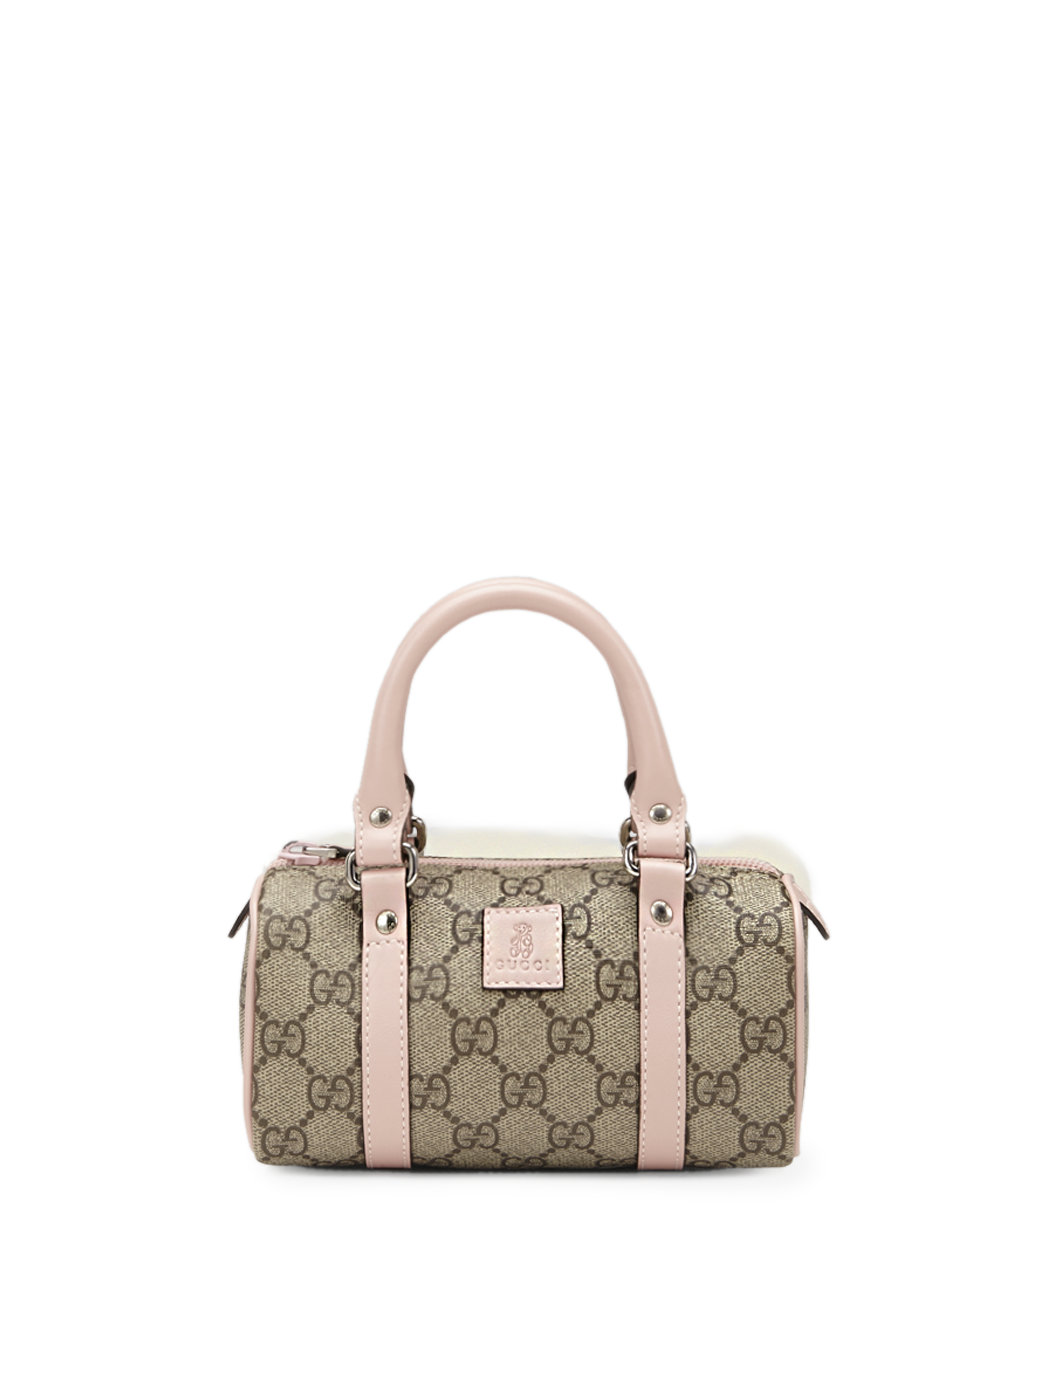 728fa61a2f Gucci Girls Gg Plus Top Handle Bag in Gray - Lyst